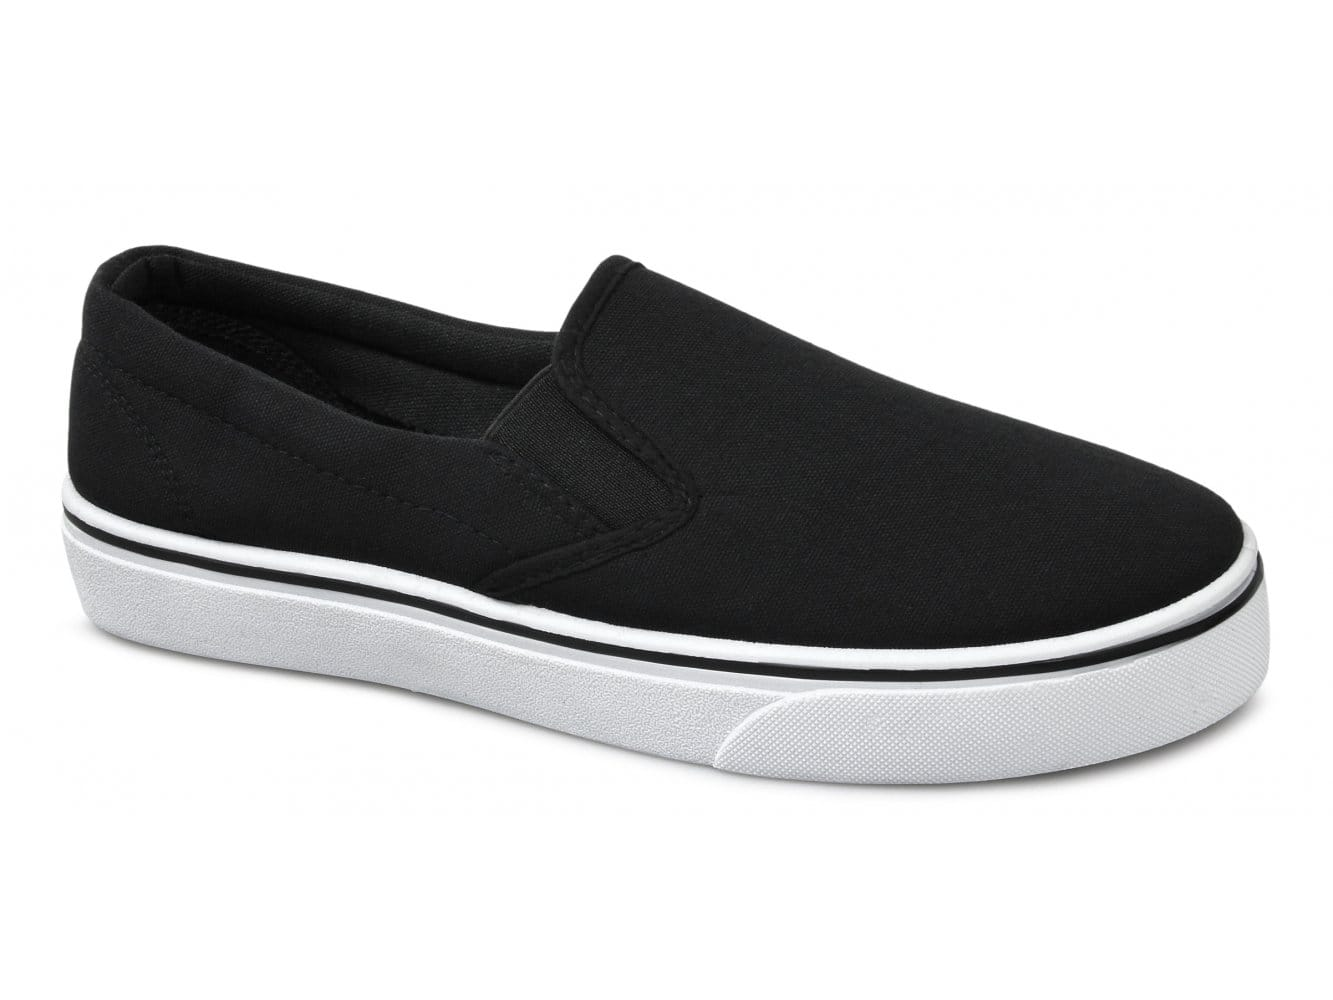 The OP men's canvas AFTER BEACH SHOES are durable to wear out in the yard or for a quick trip to the store. I wear them as slippers aroung the house,they are unbeleivably comfotable/5(26).